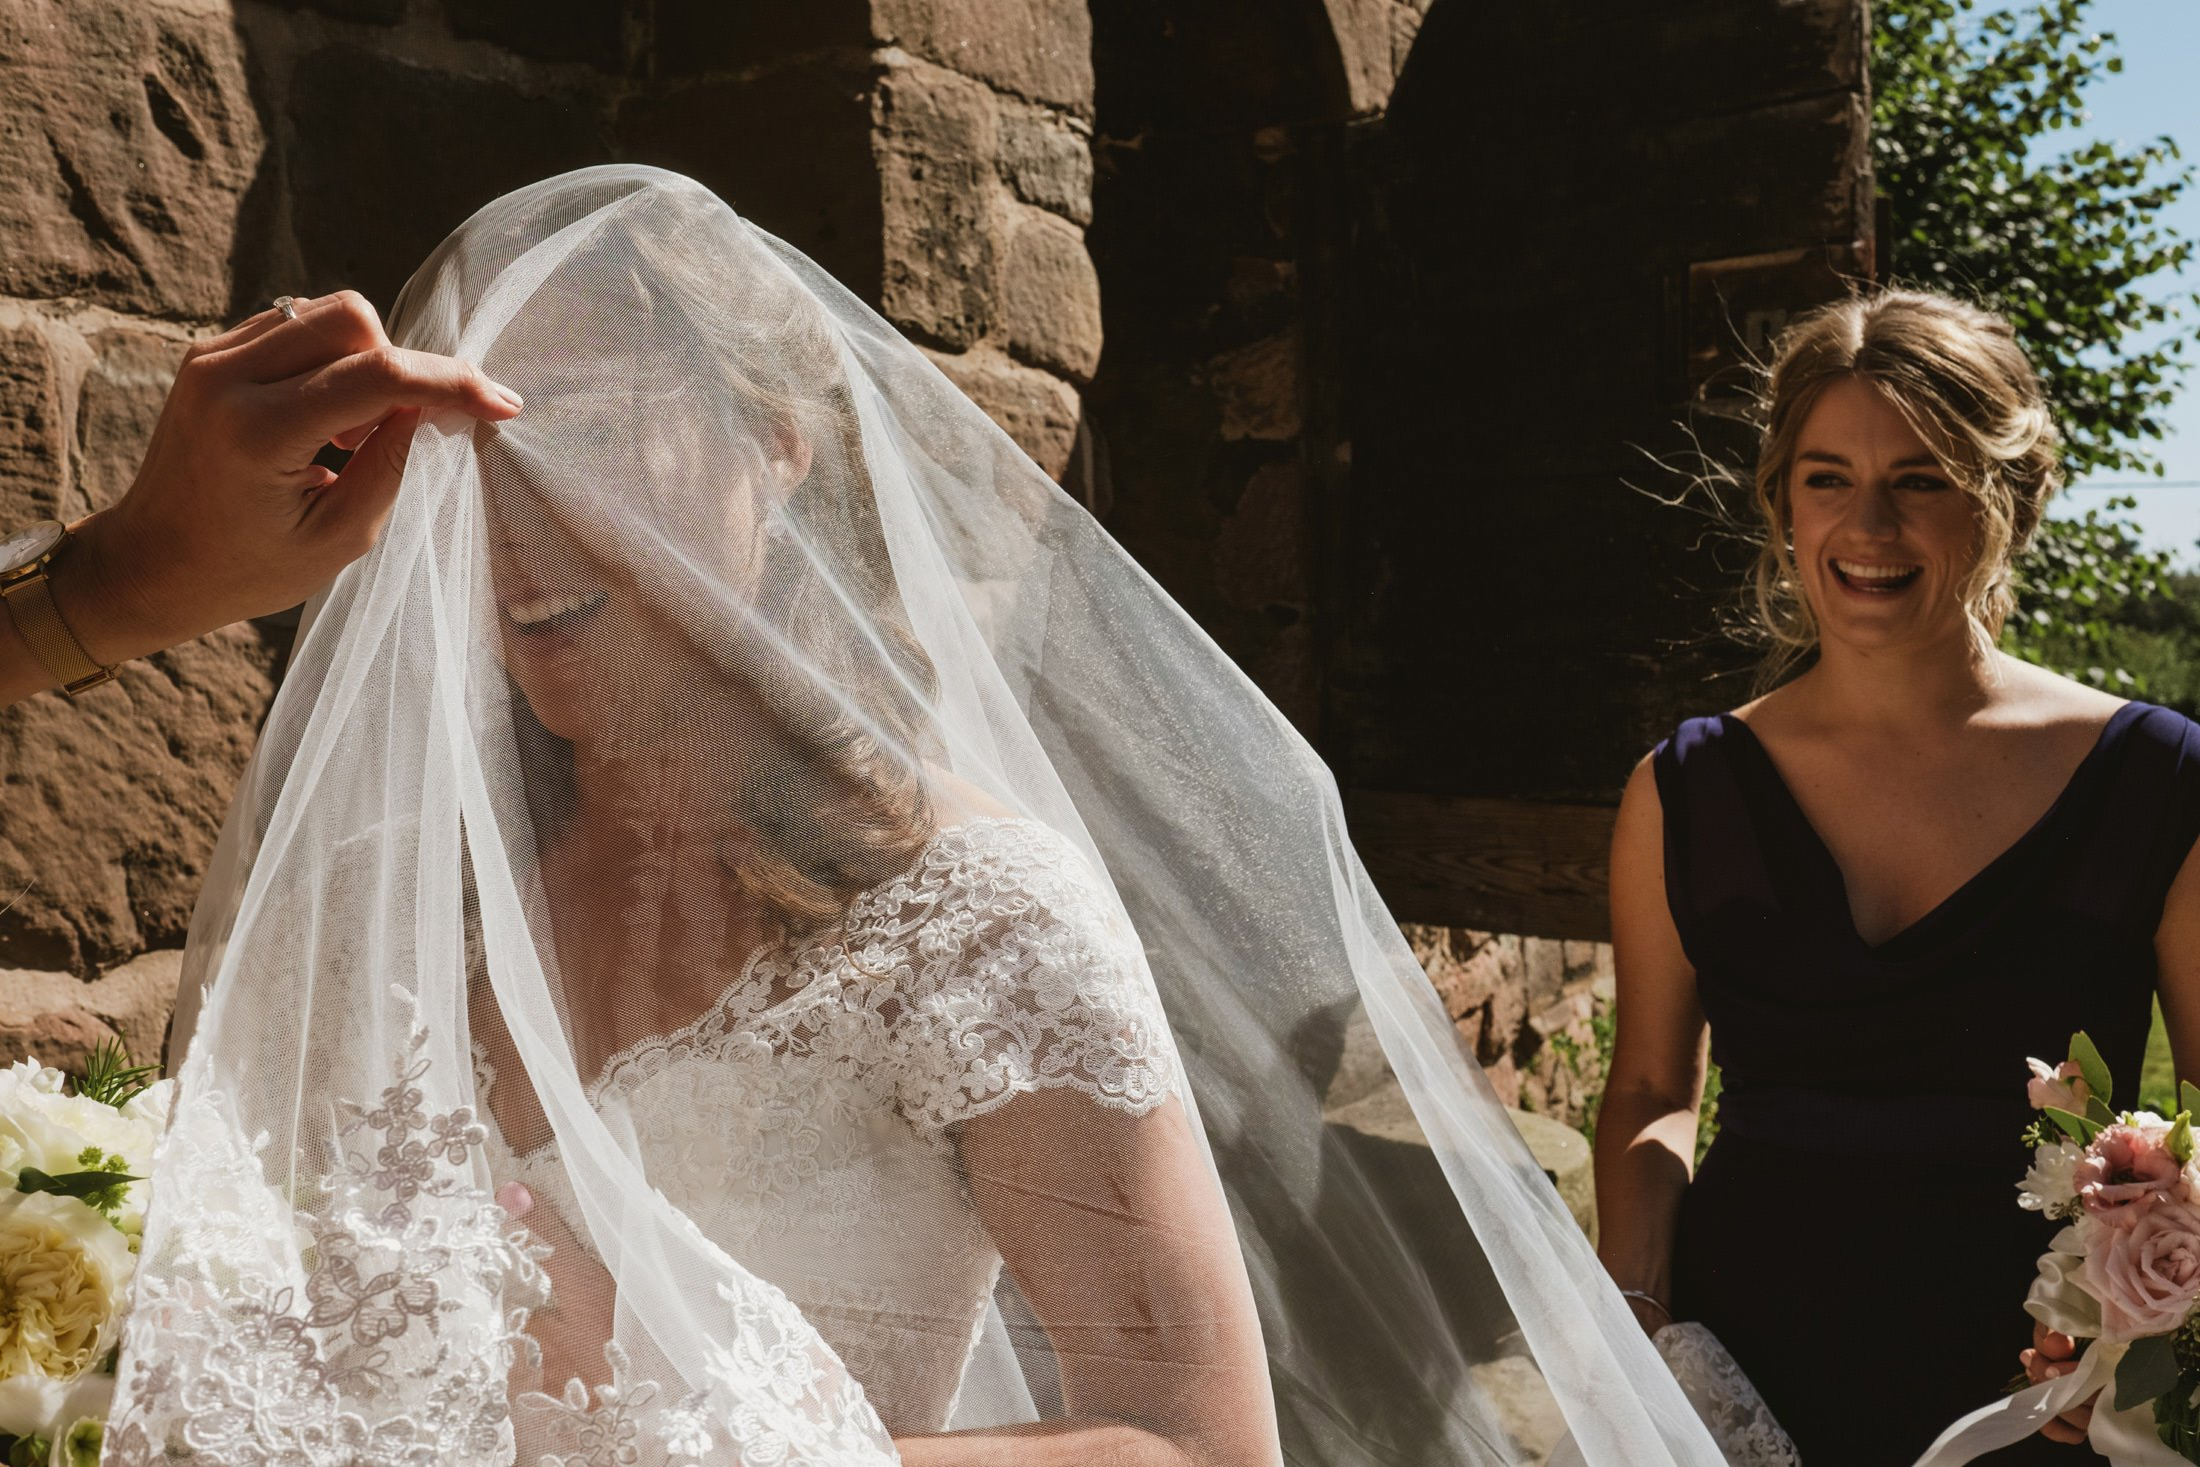 bride putting her veil on at the church